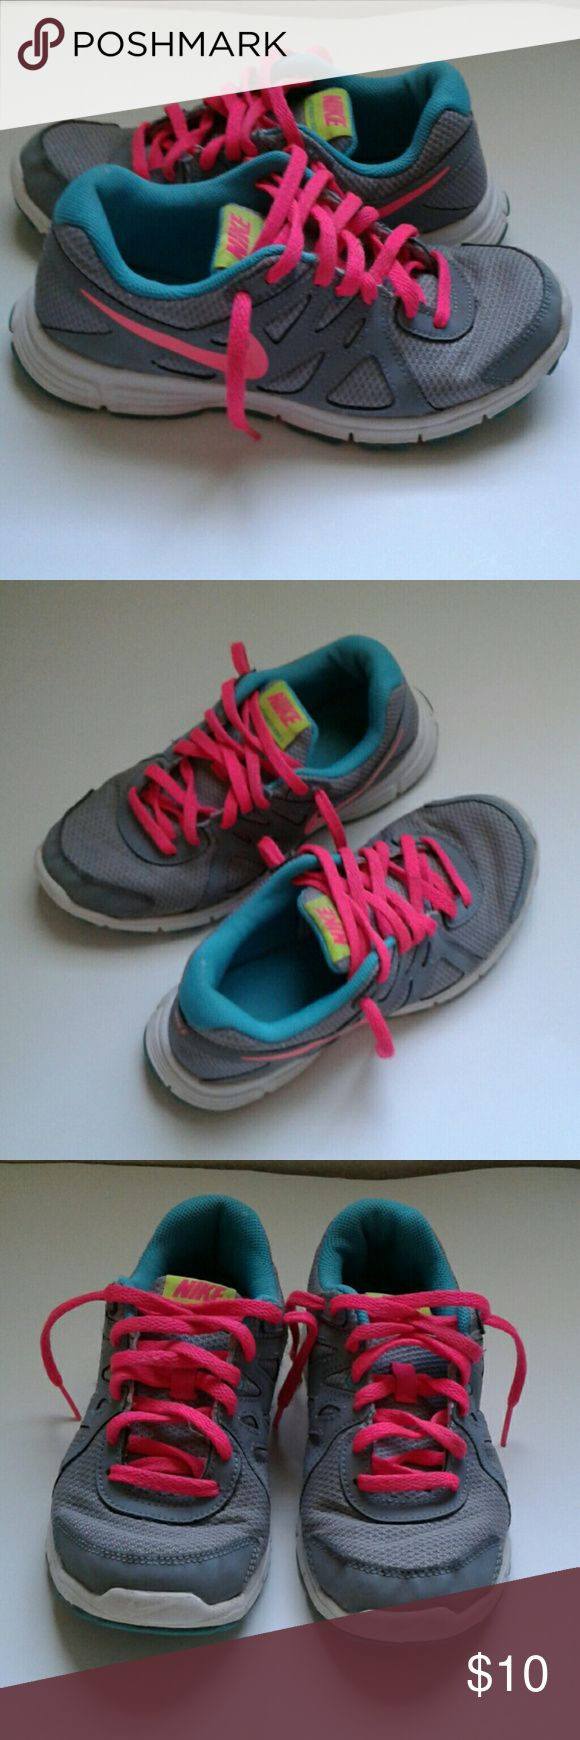 Nike Revolution 2 Sneakers Nike Revolution 2 sneakers girl size 3.5Y gray and pink used good condition Nike Shoes Sneakers